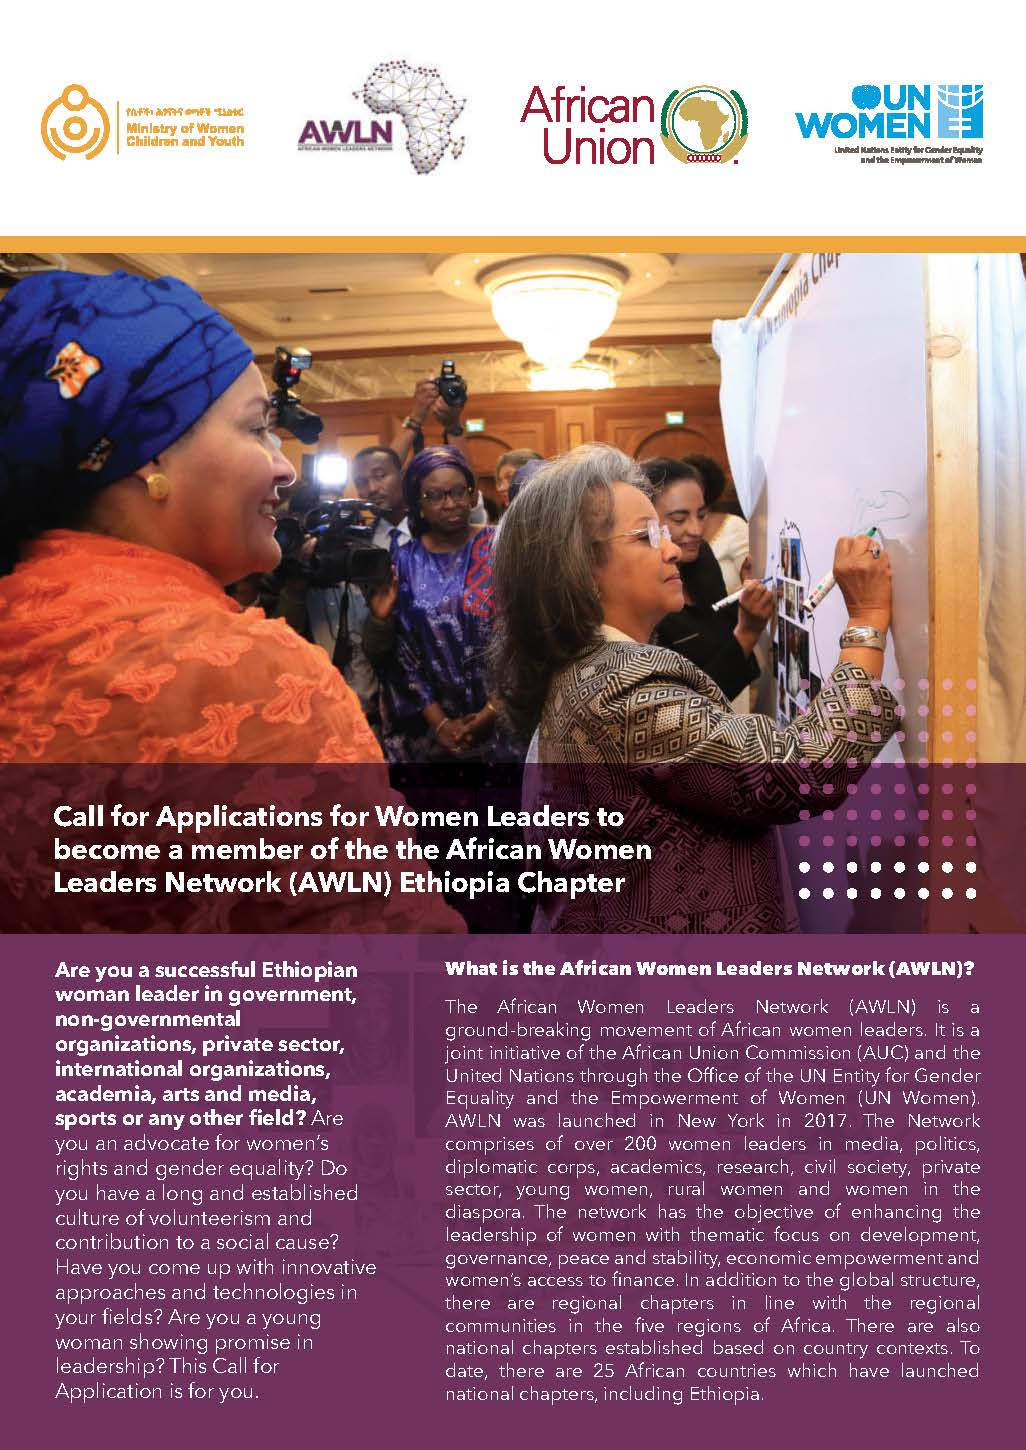 Call for Application for Women Leaders to become a member of the African Women Leaders Network (AWLN) Ethiopia Chapter